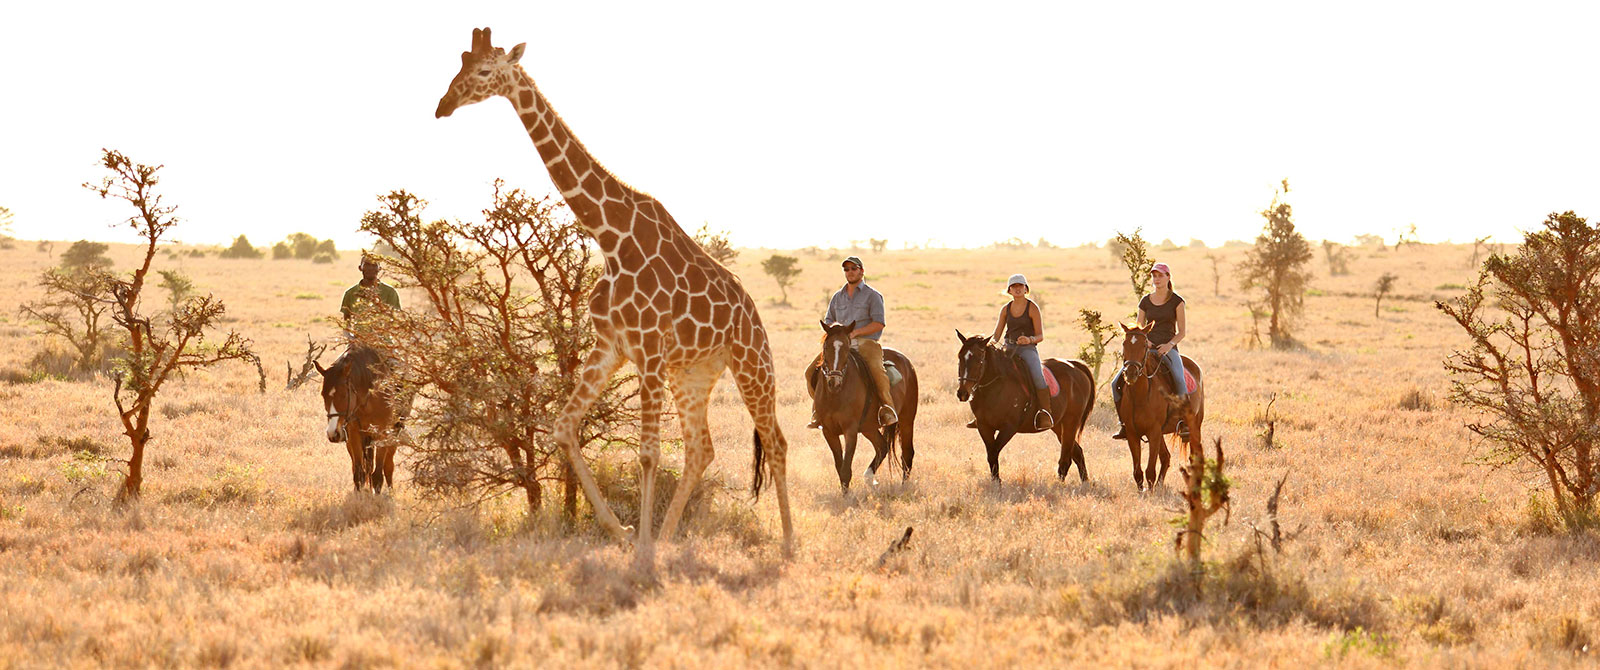 Horseback Safari in Kenya - Lewa Wilderness - East African Safari: Kenya and Tanzania Luxury Tour